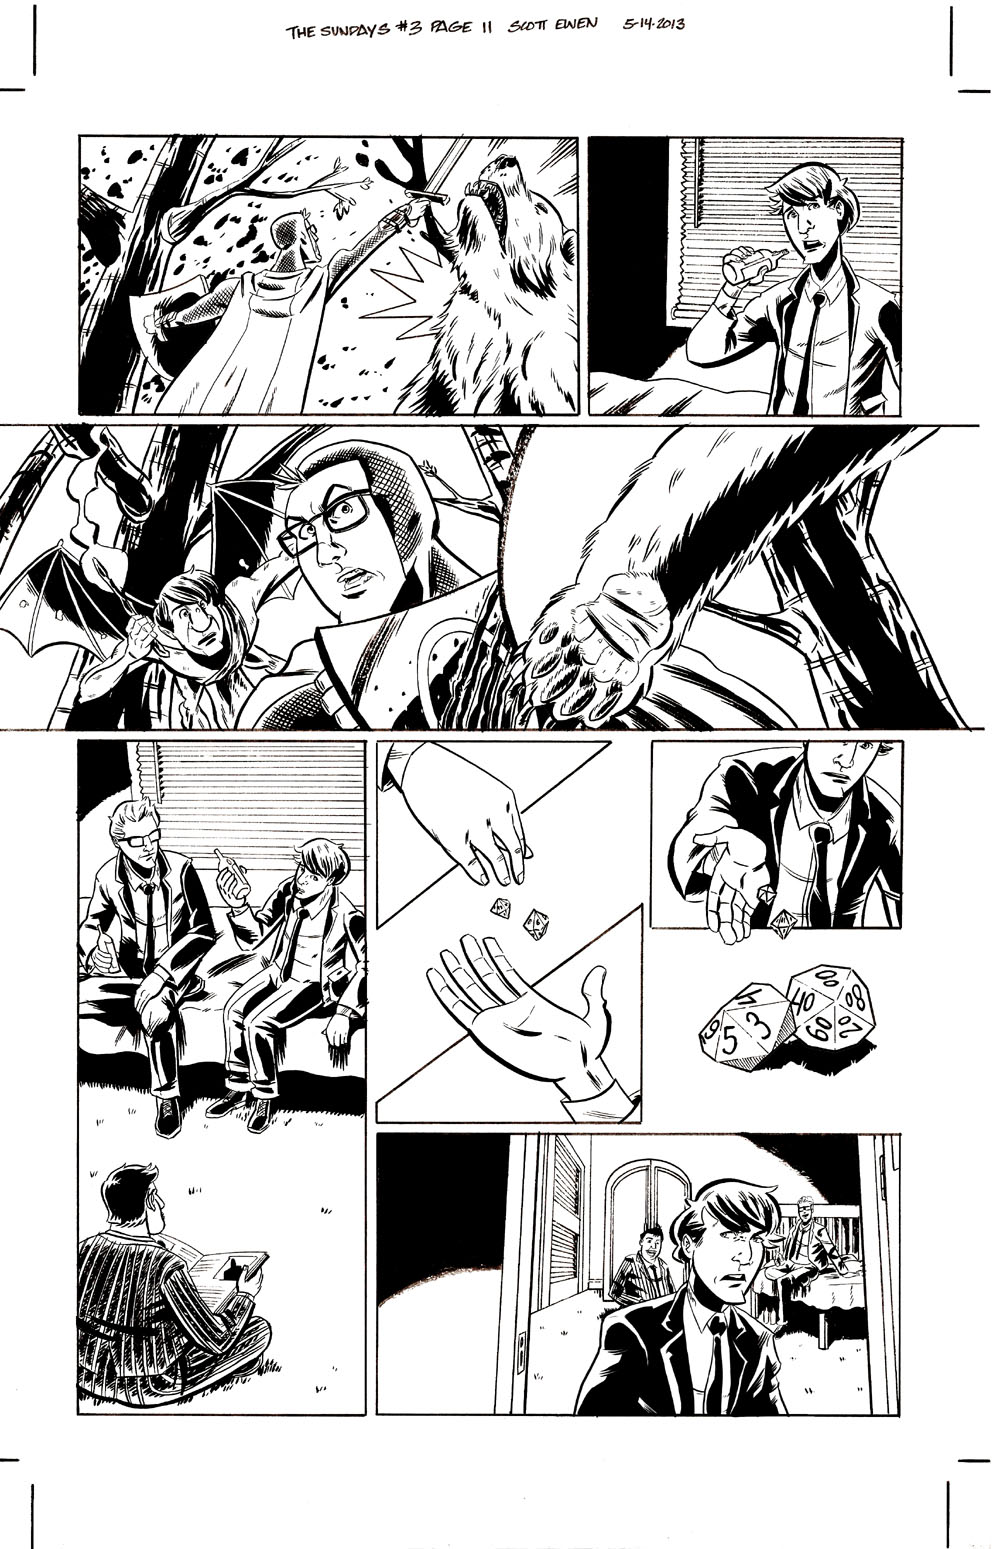 the_sundays__3_page_11_inks__revised__by_scottewen-d663s7q.jpg